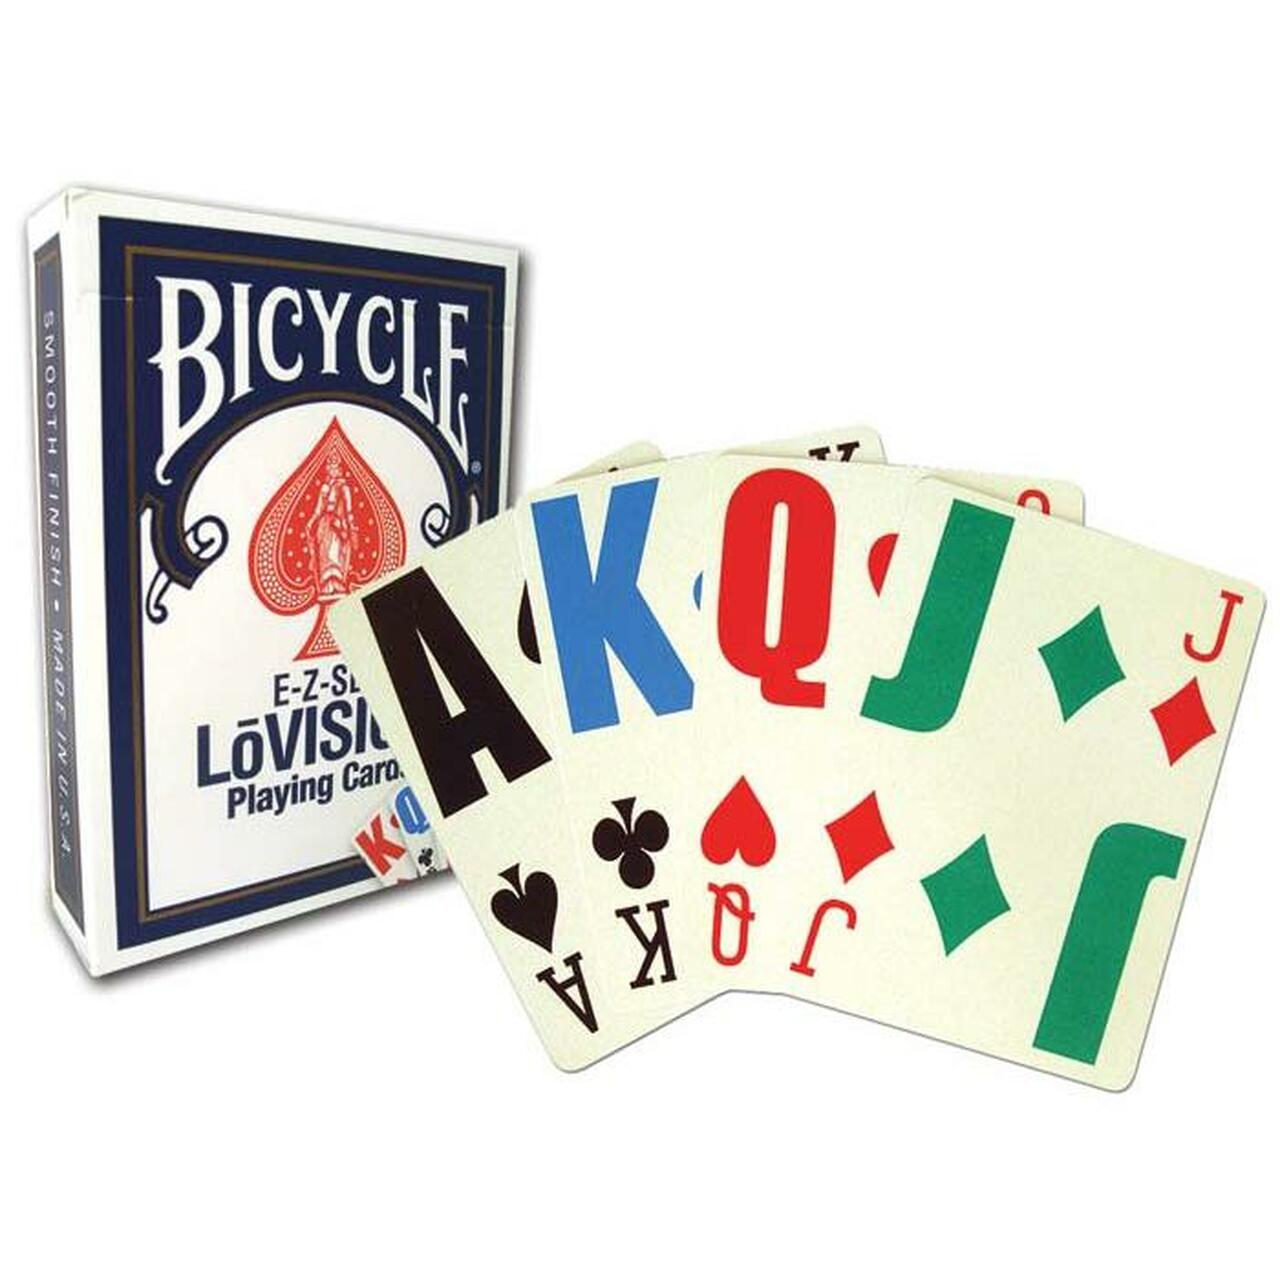 Playing Cards: LoVision E-Z-SEE - Bicycle